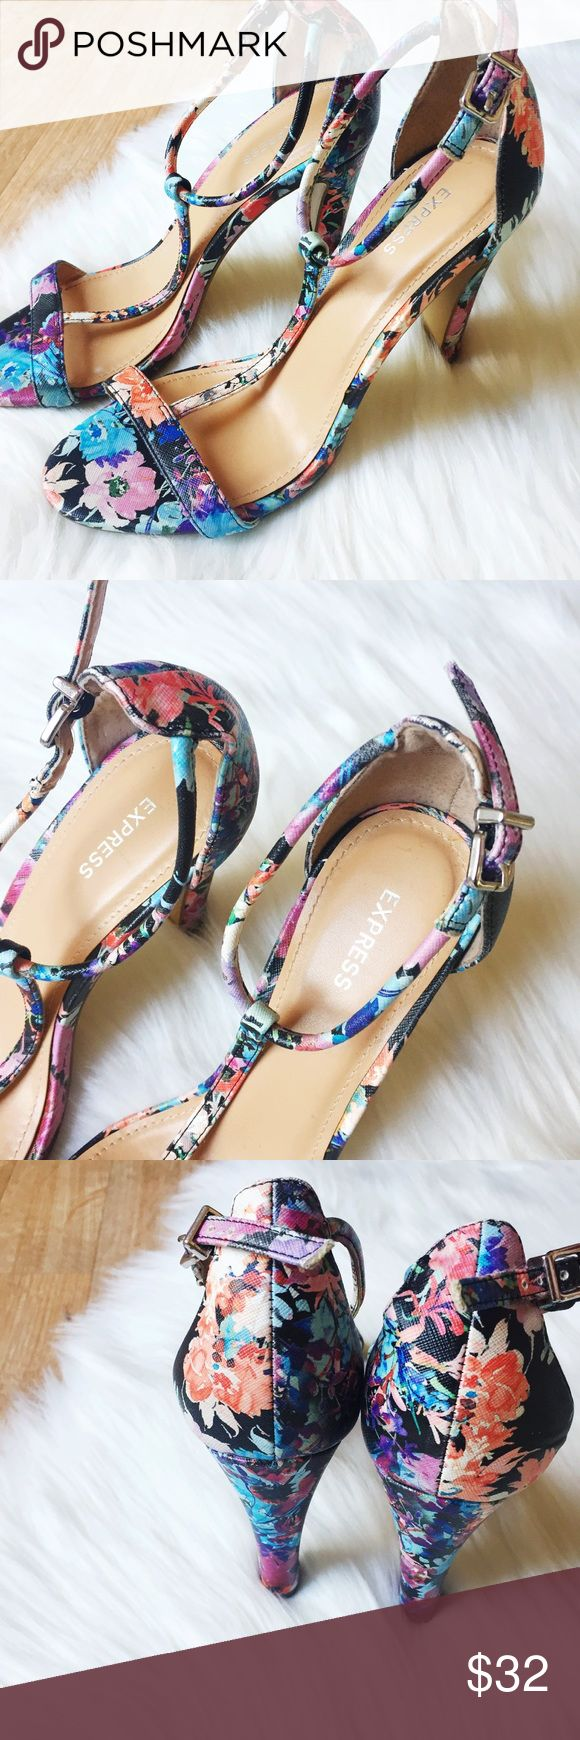 Express Colorful Floral Strappy Heels Express Colorful Floral Strappy Heels. Perfect Condition!! Worn Once! SZ. 8. Happy to answer any questions! Thanks for looking!   OFFERS are welcome!  ** 15% off Bundles of 3+ ** Smoke free home. No trades. Express Shoes Heels